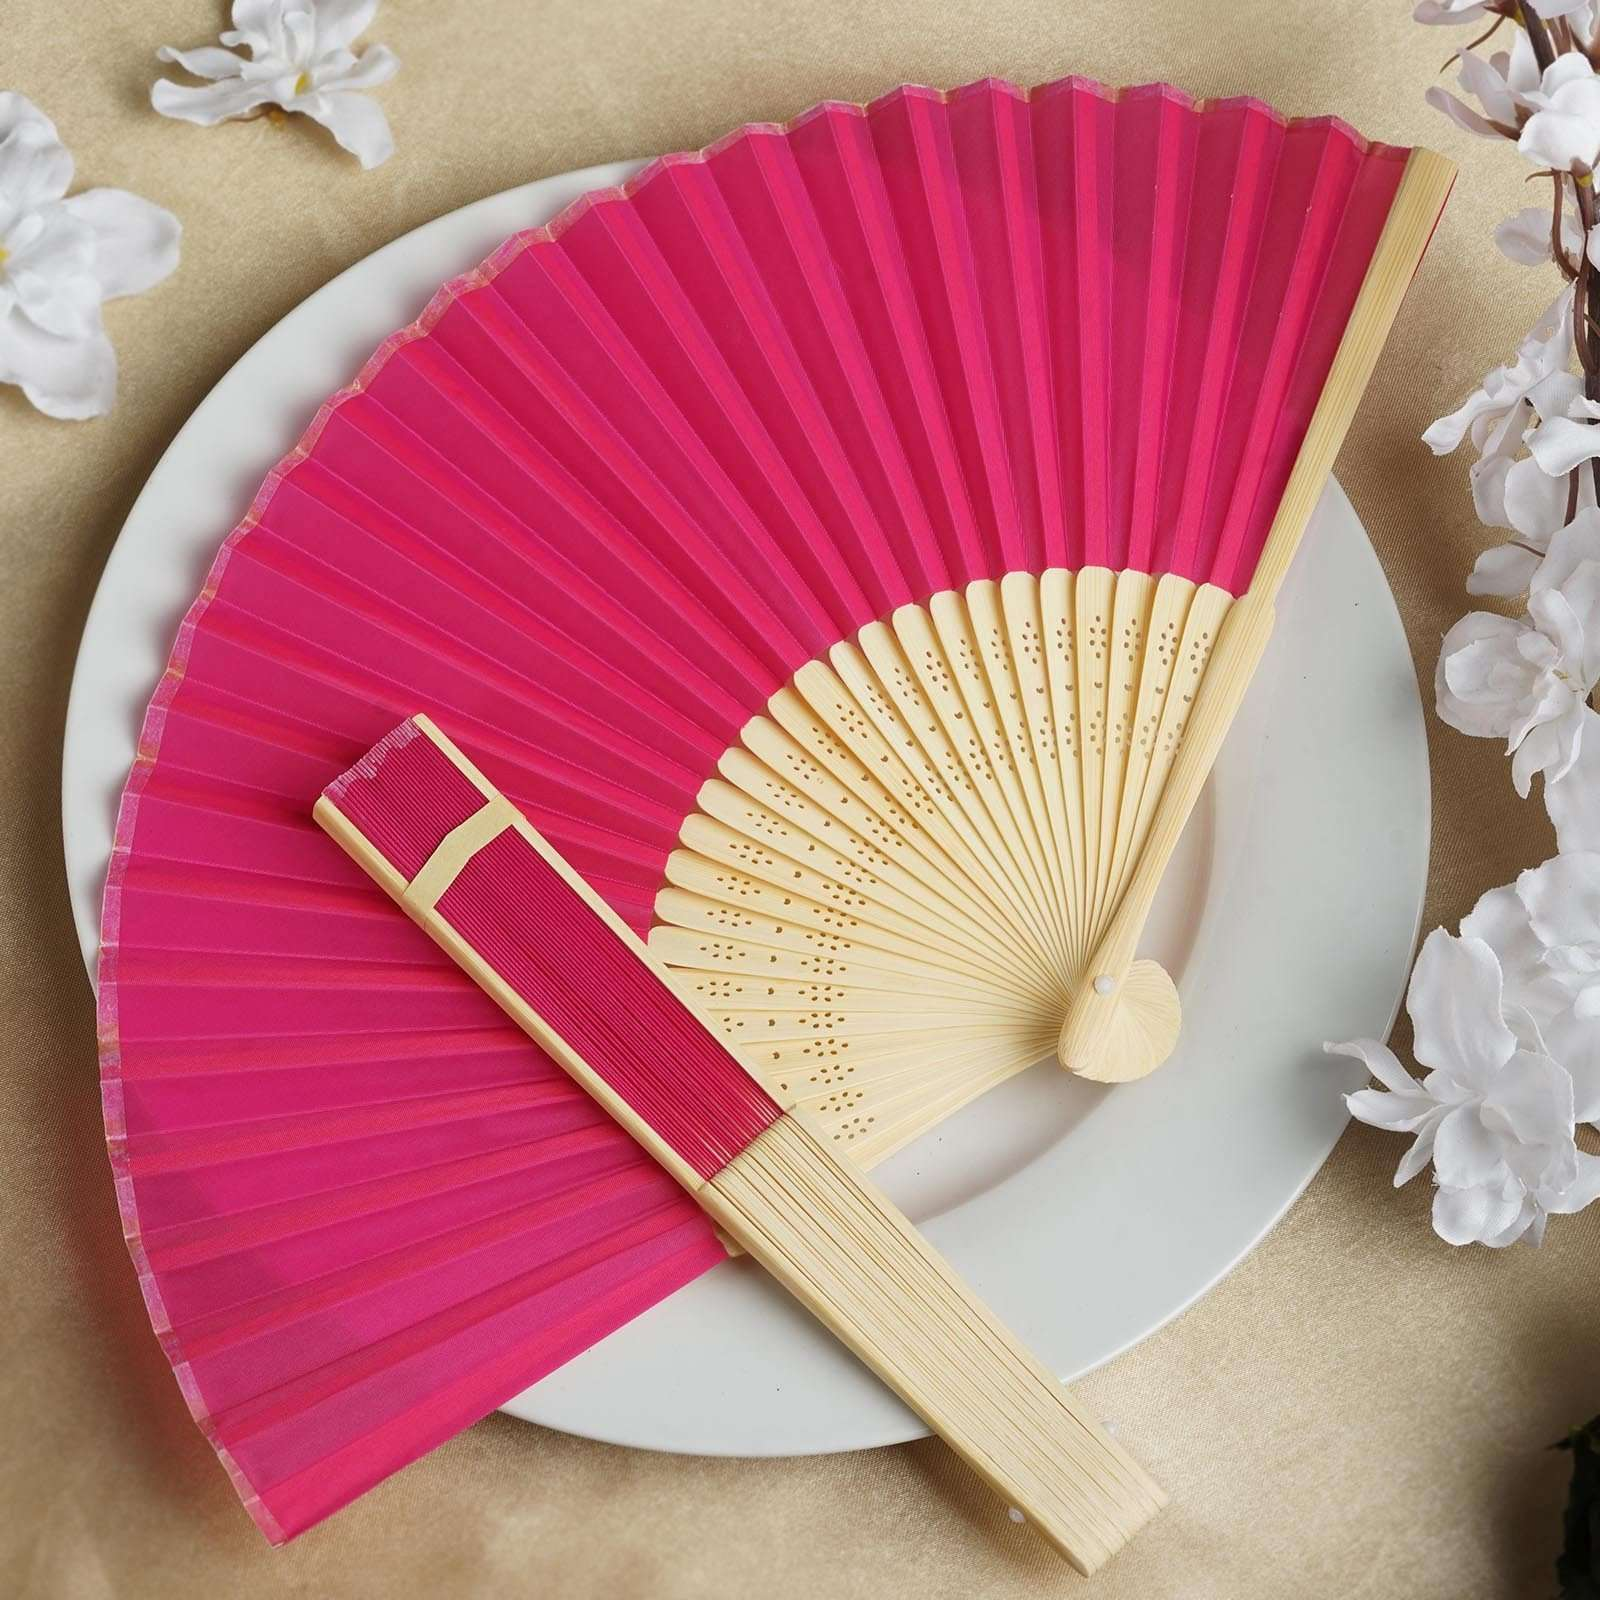 Fabulous Wholesale Silk Folding Wedding Party Favor Fans Table Top Placecard Holder Fushia Interior Design Ideas Grebswwsoteloinfo